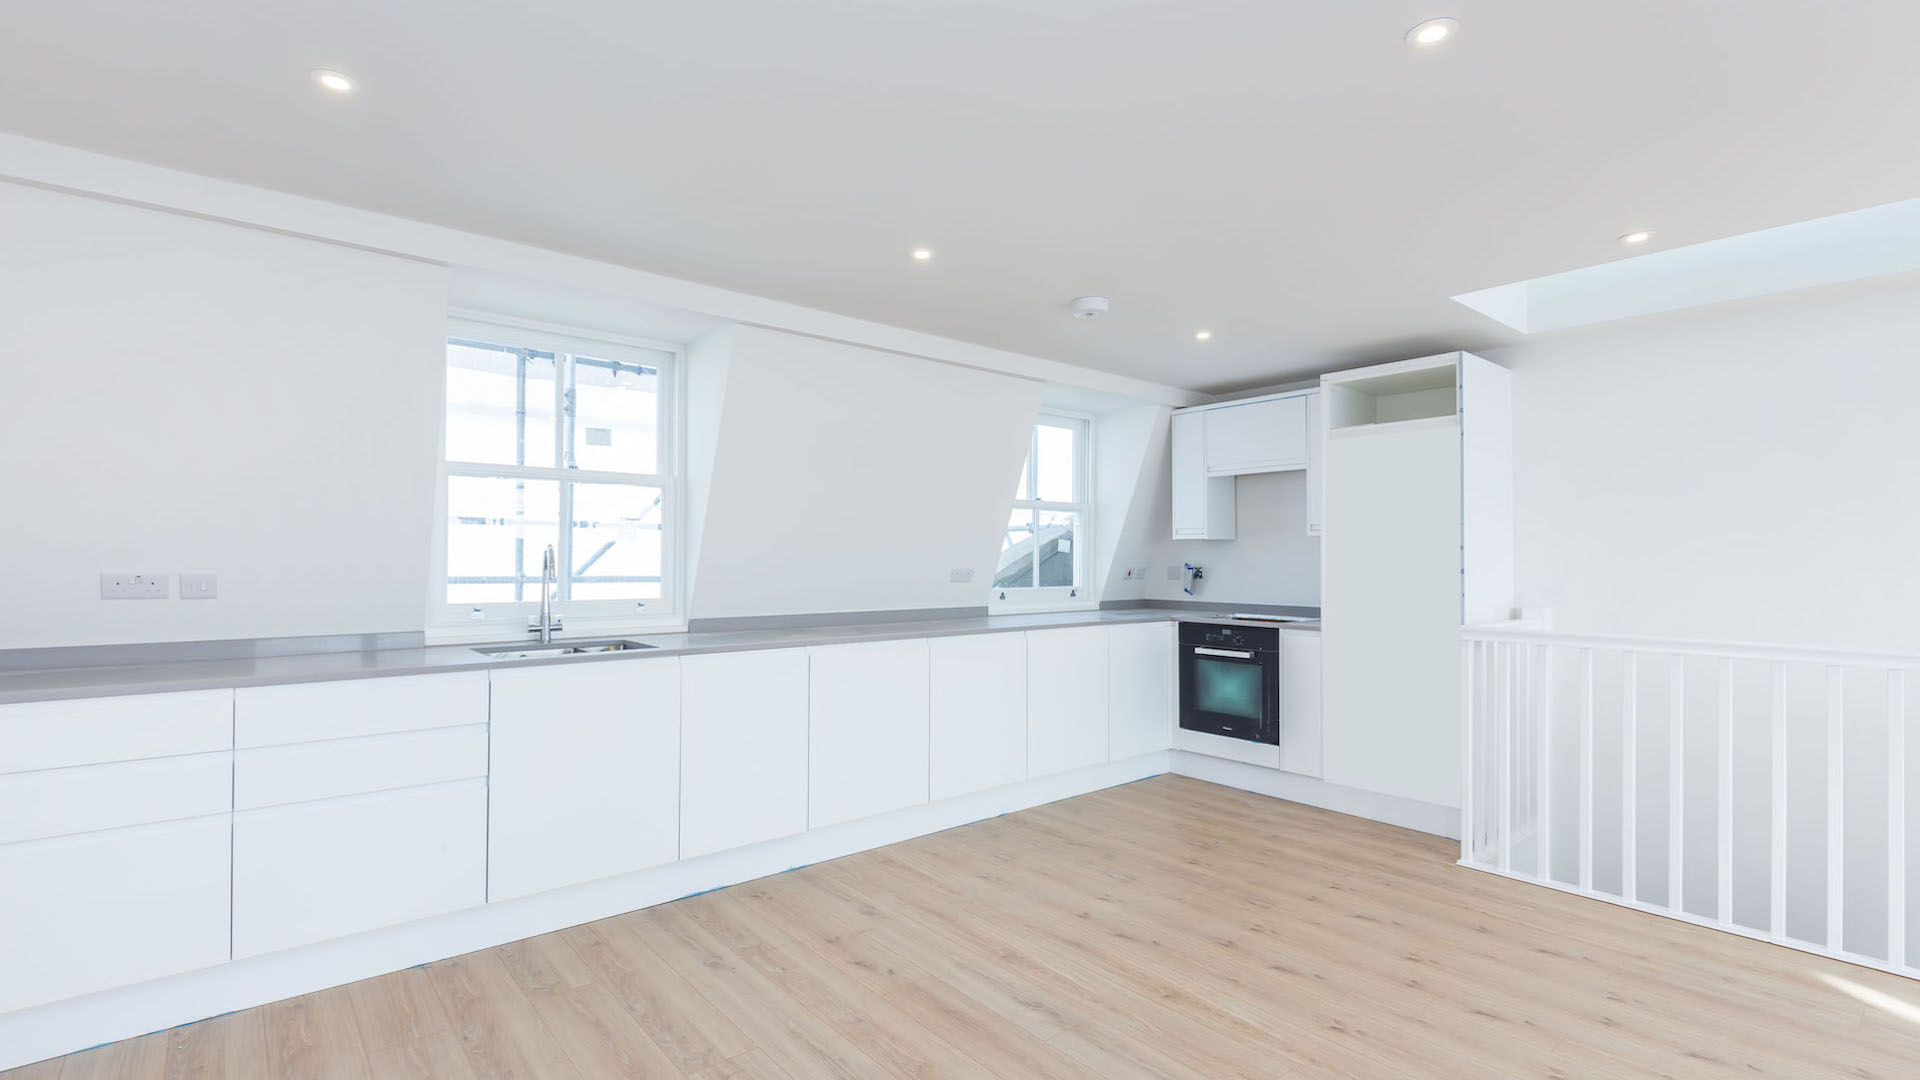 Large galley kitchen with crisp white cabinets, sink, oven and room for a fridge